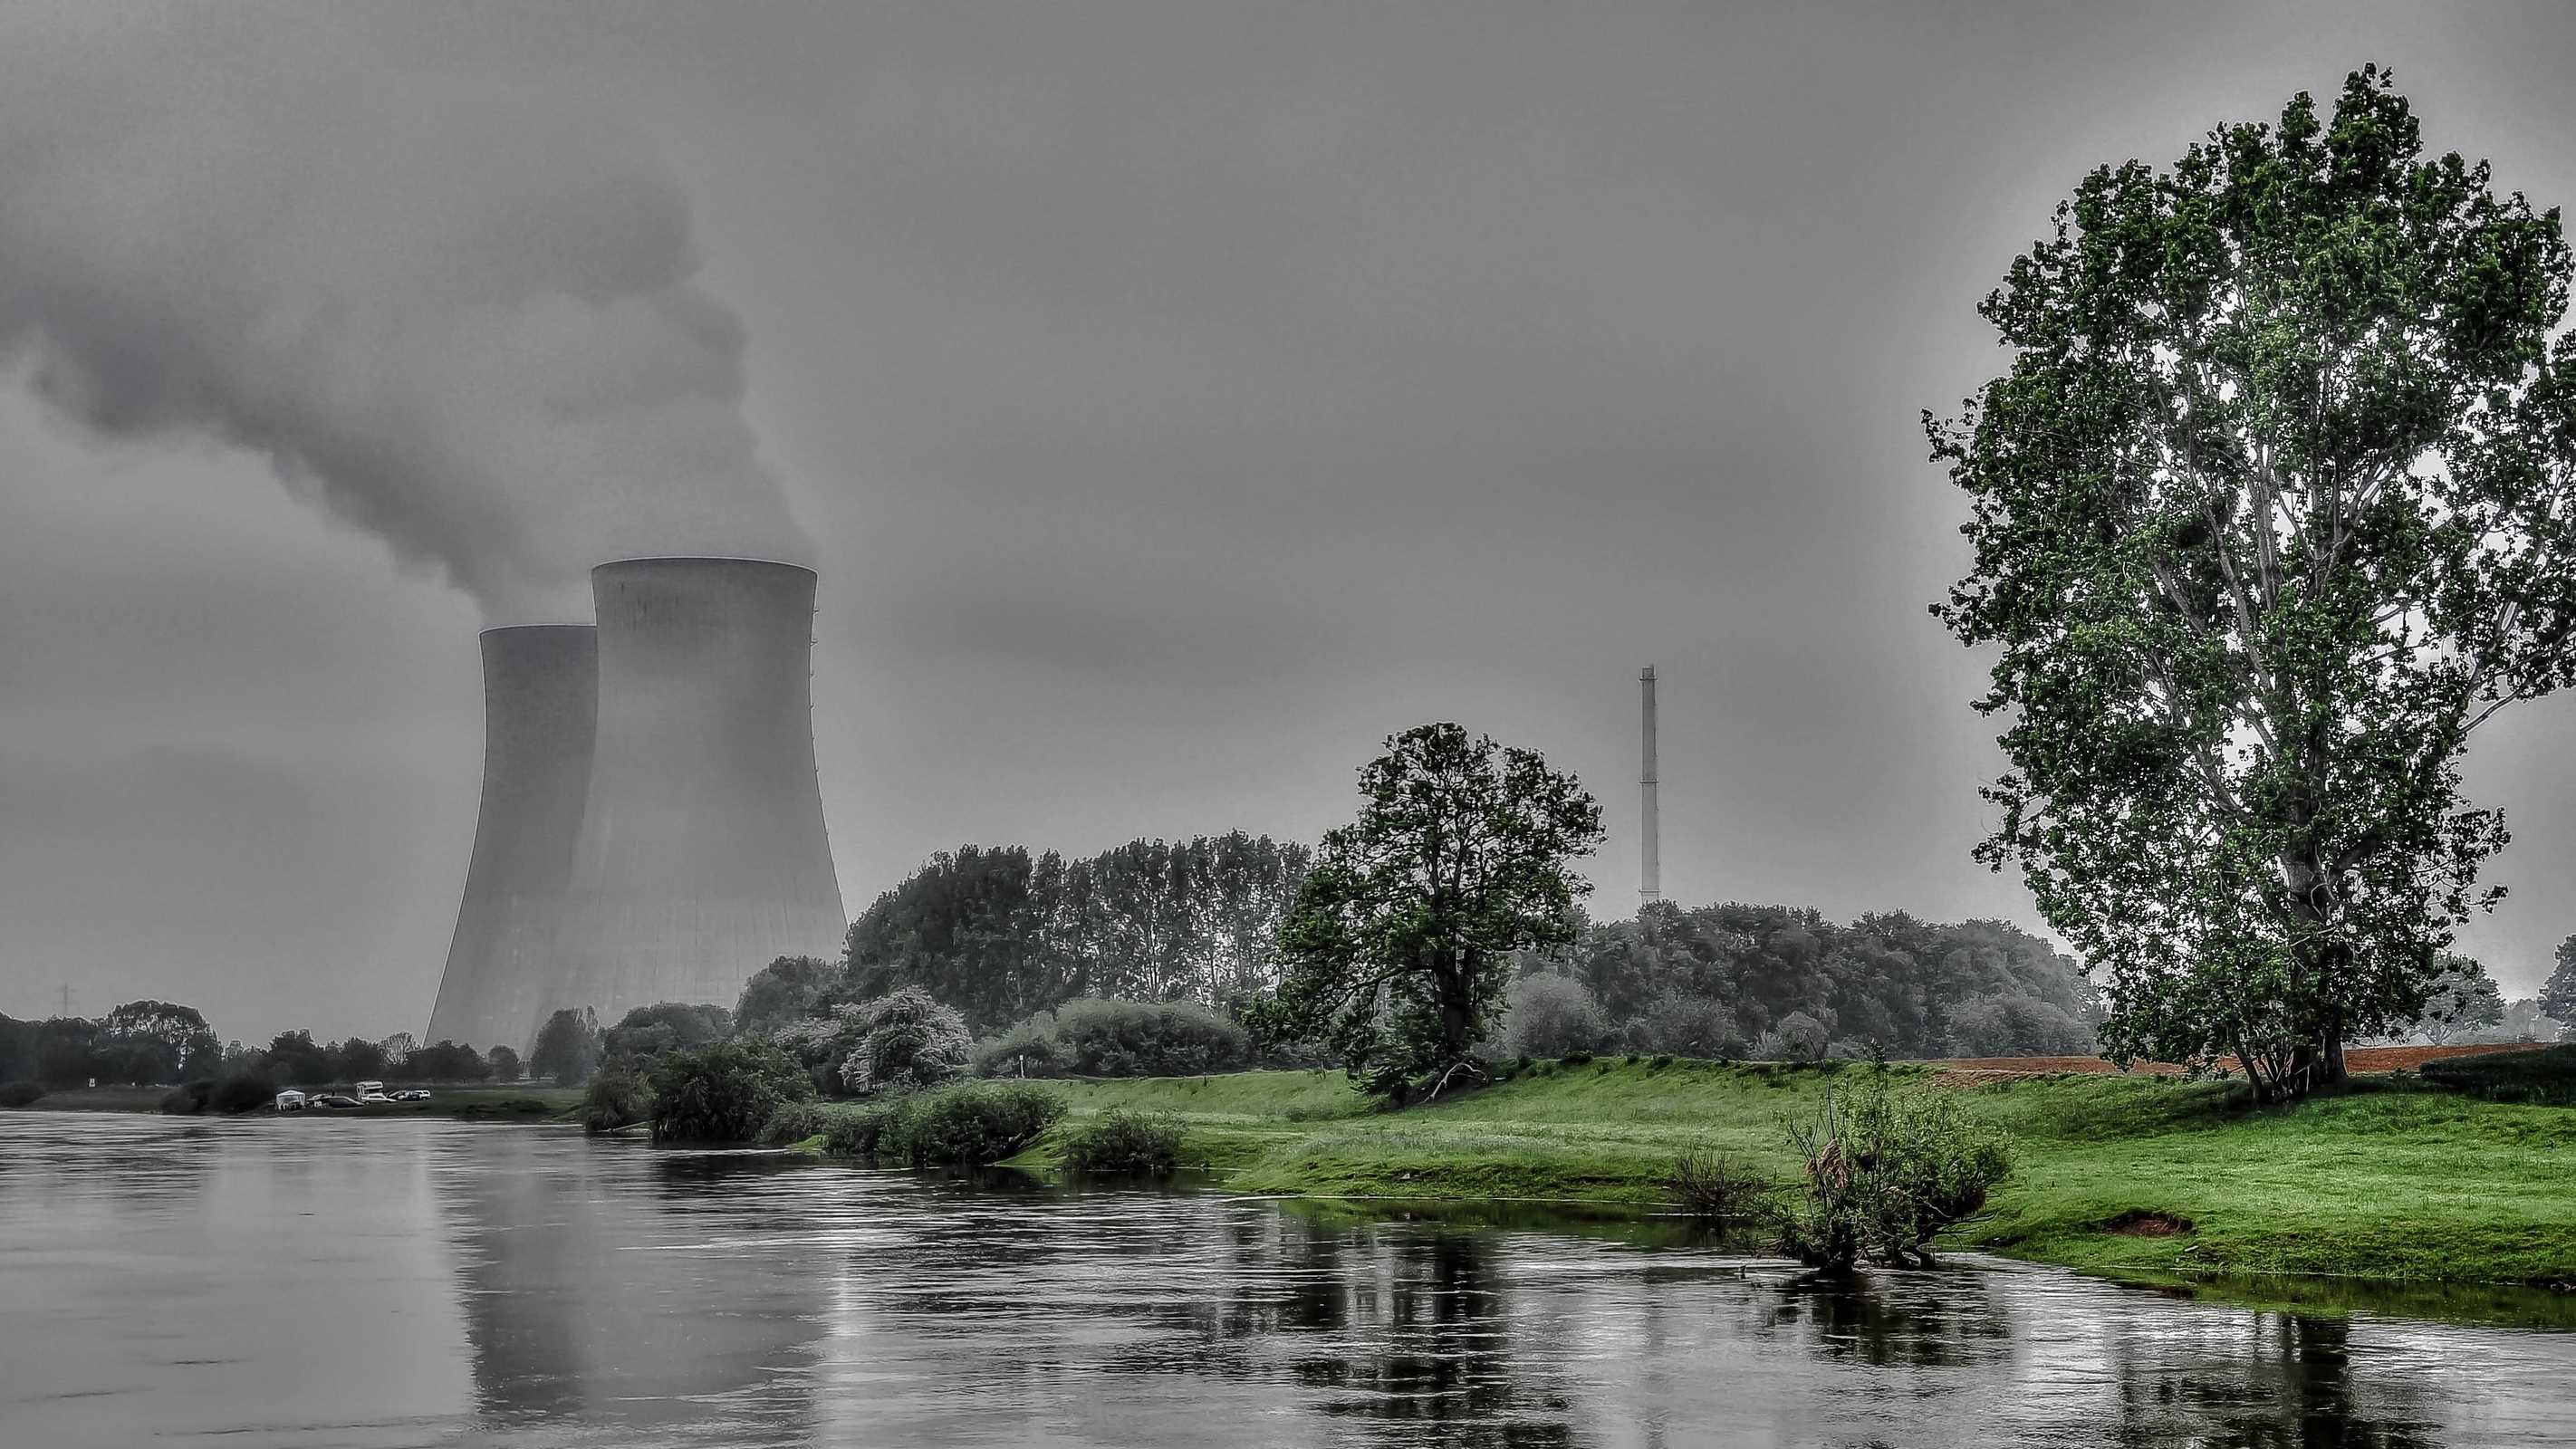 Nuclear power pros and cons: should it be abandoned ...